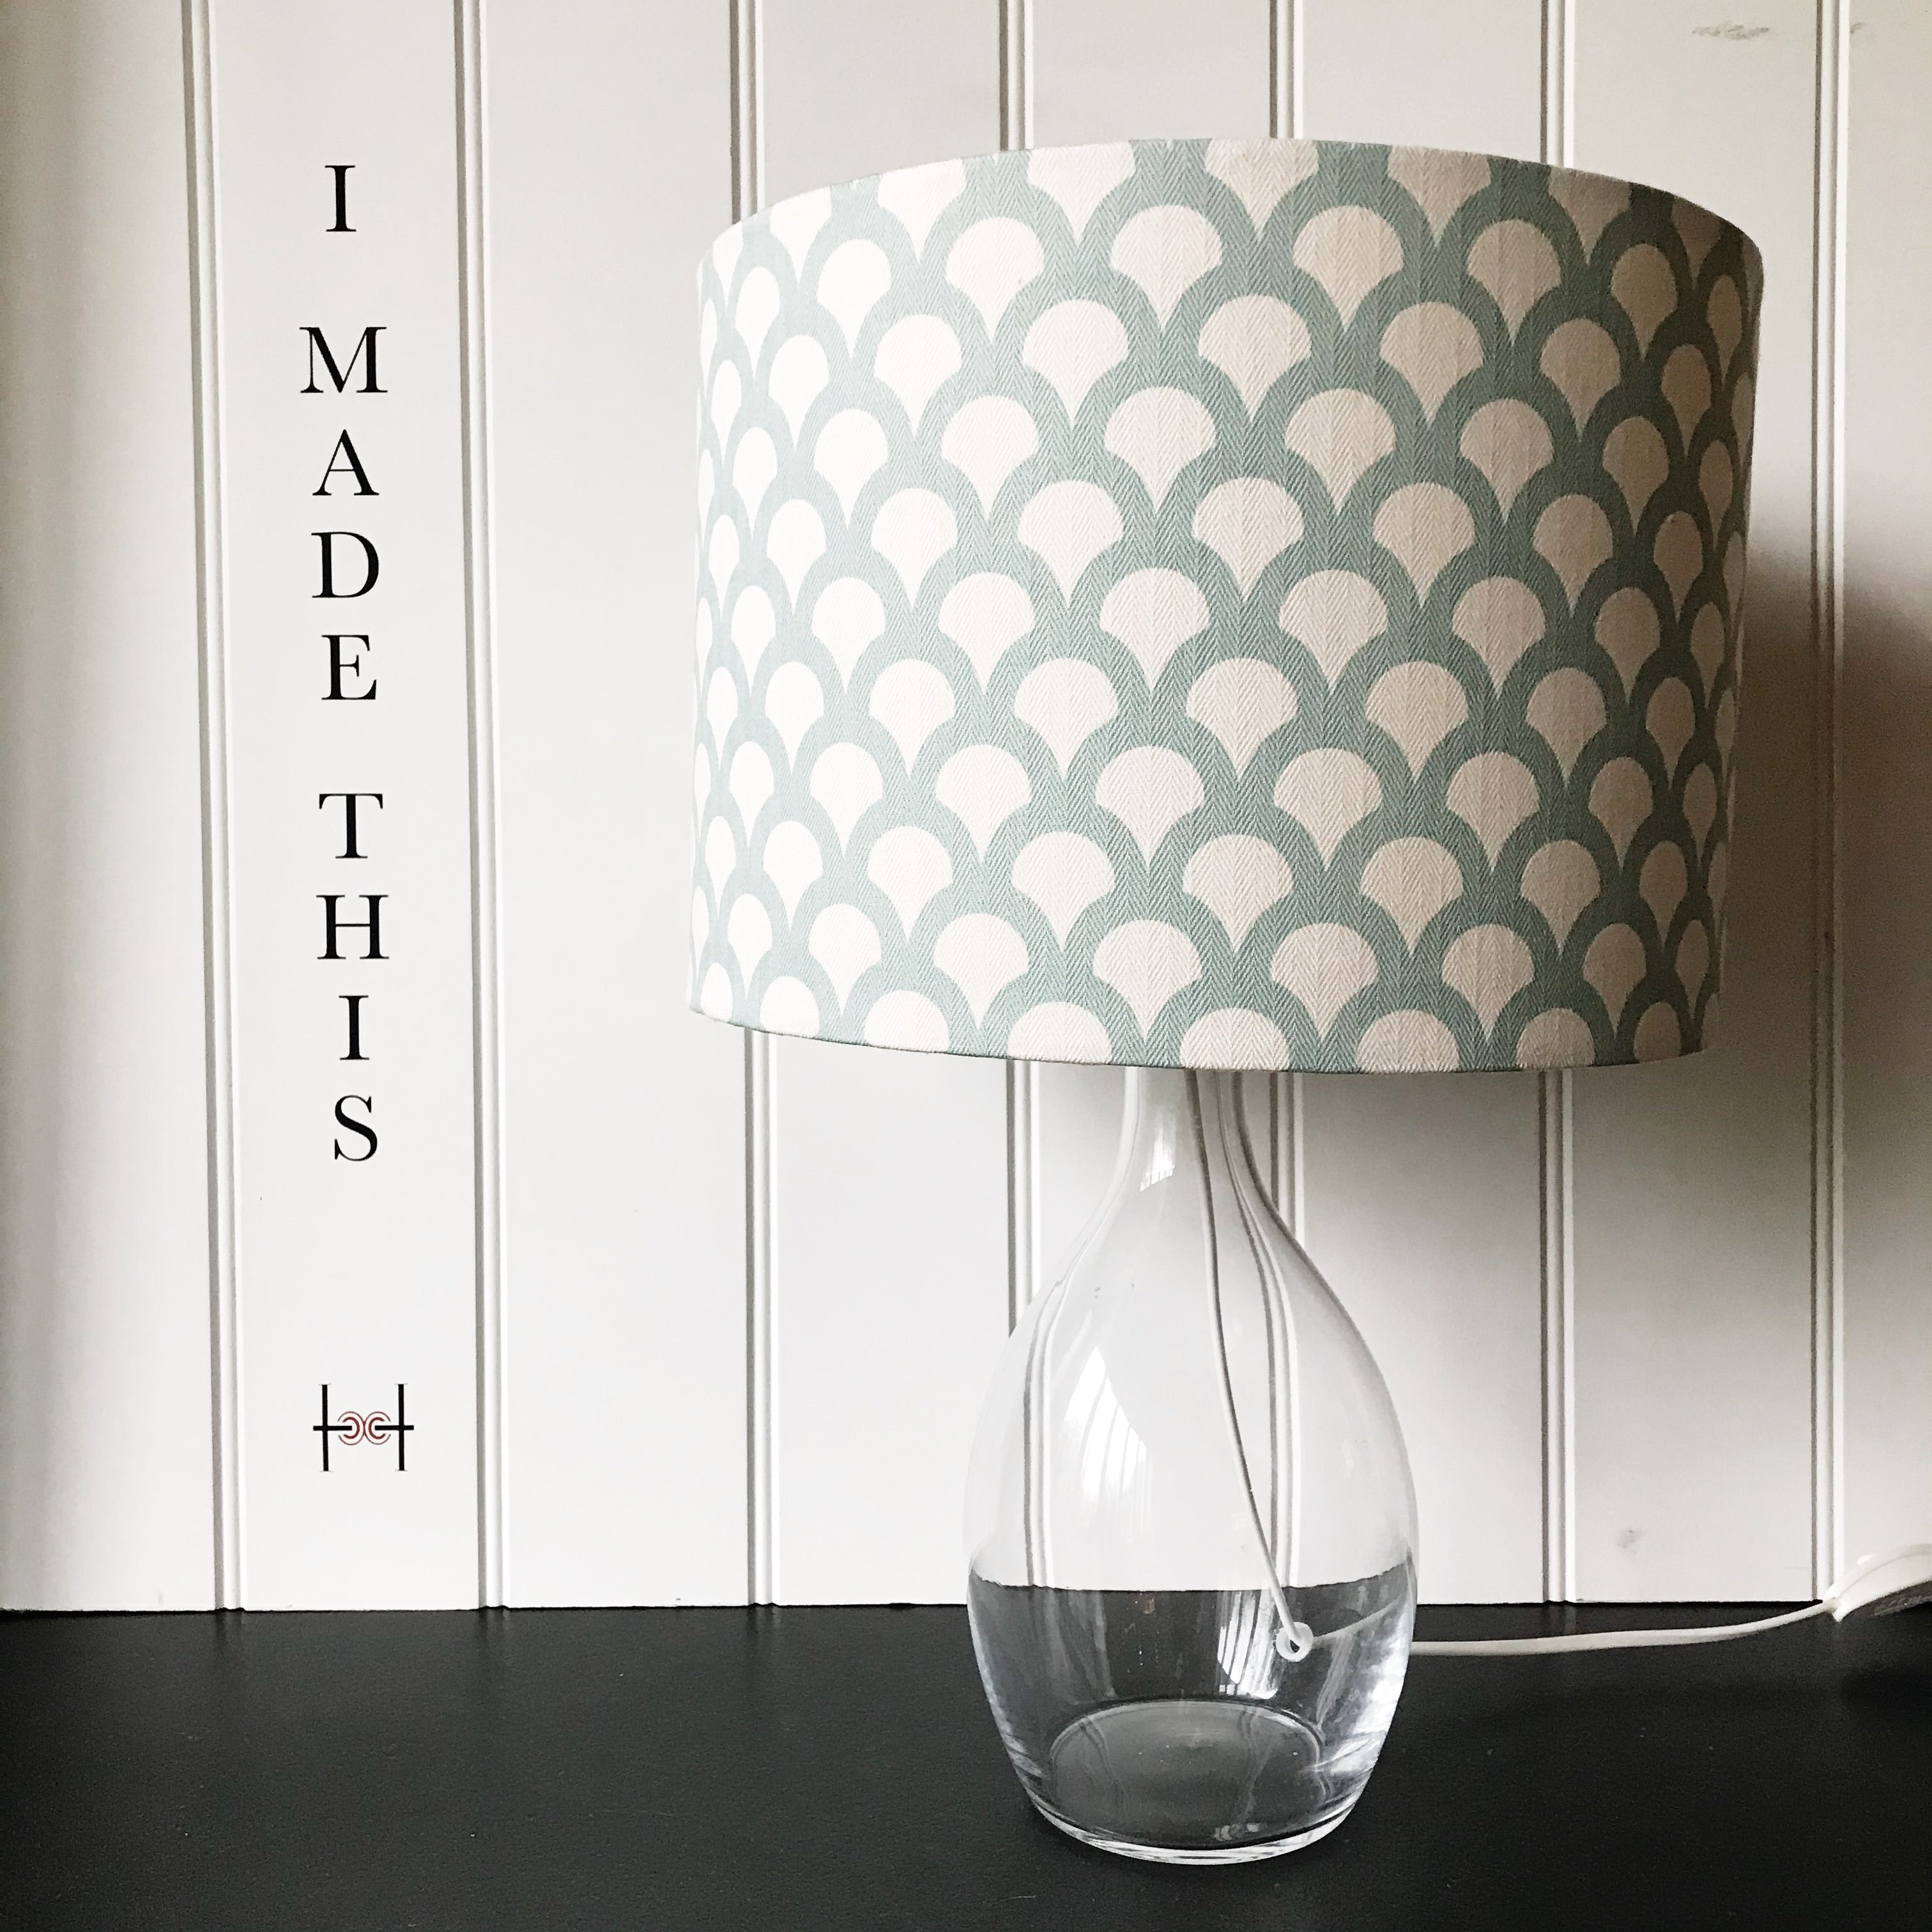 Beginners Lampshade Making Kit